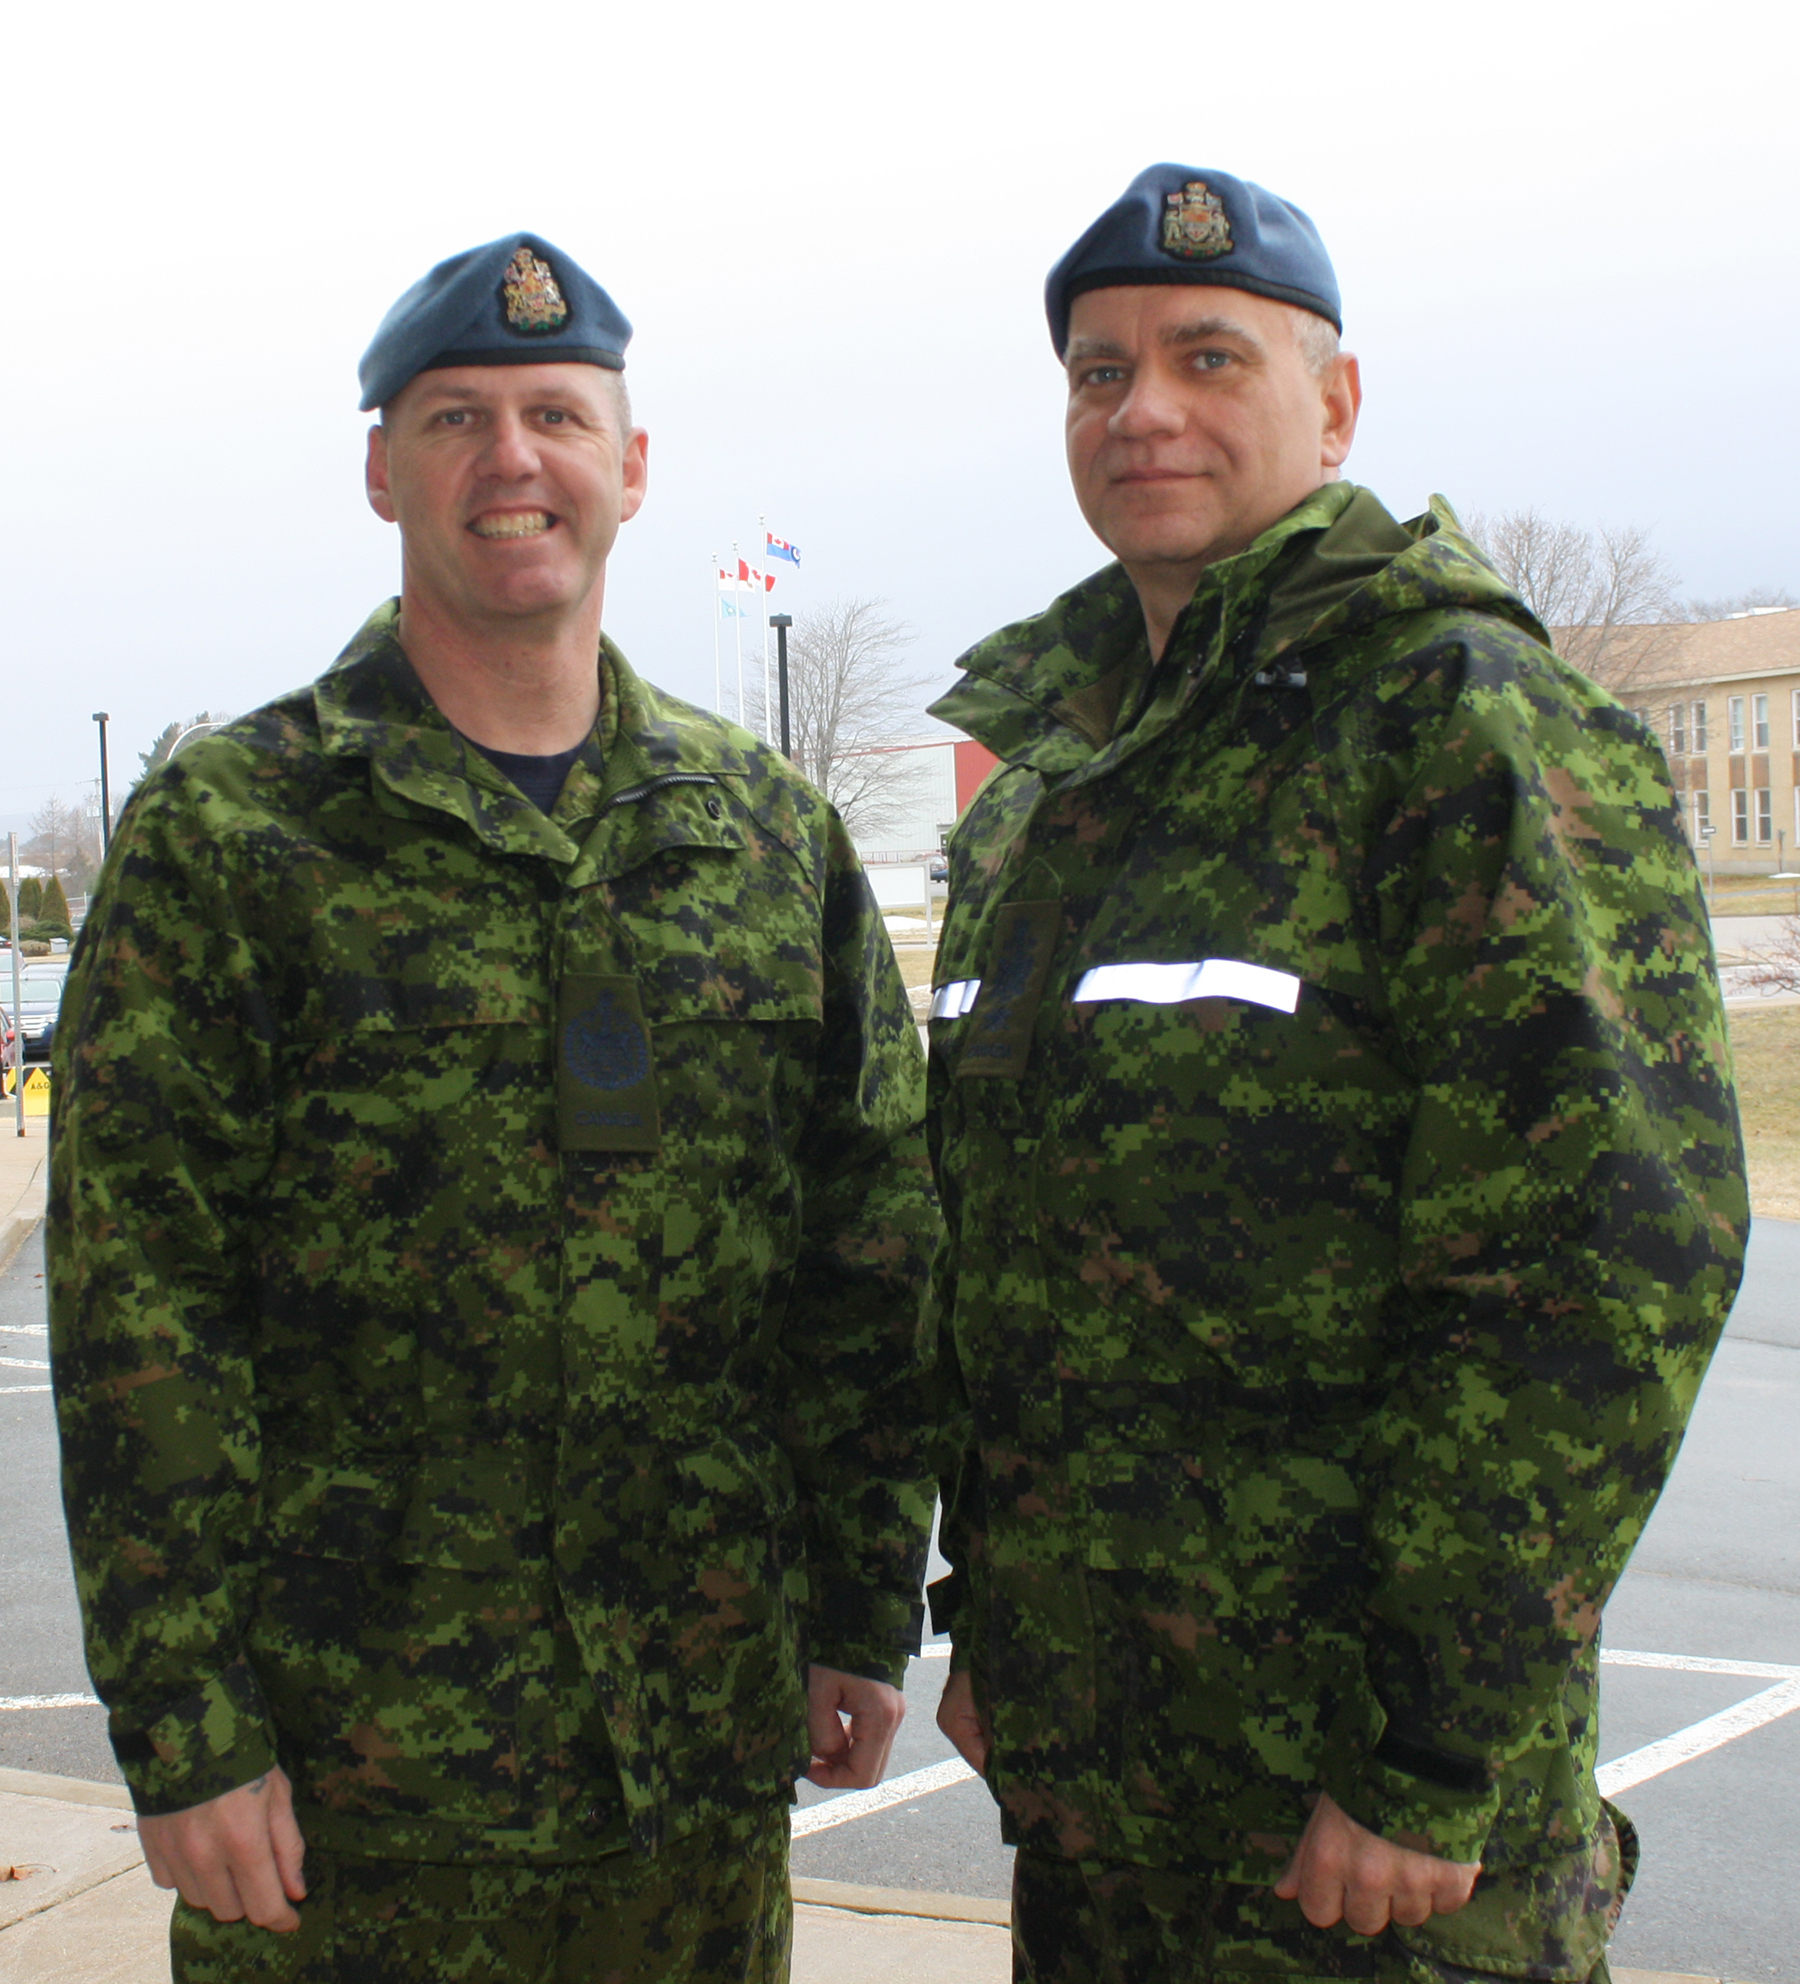 Two men stand side by side wearing black, green and tan disruptive pattern uniforms and blue berets.